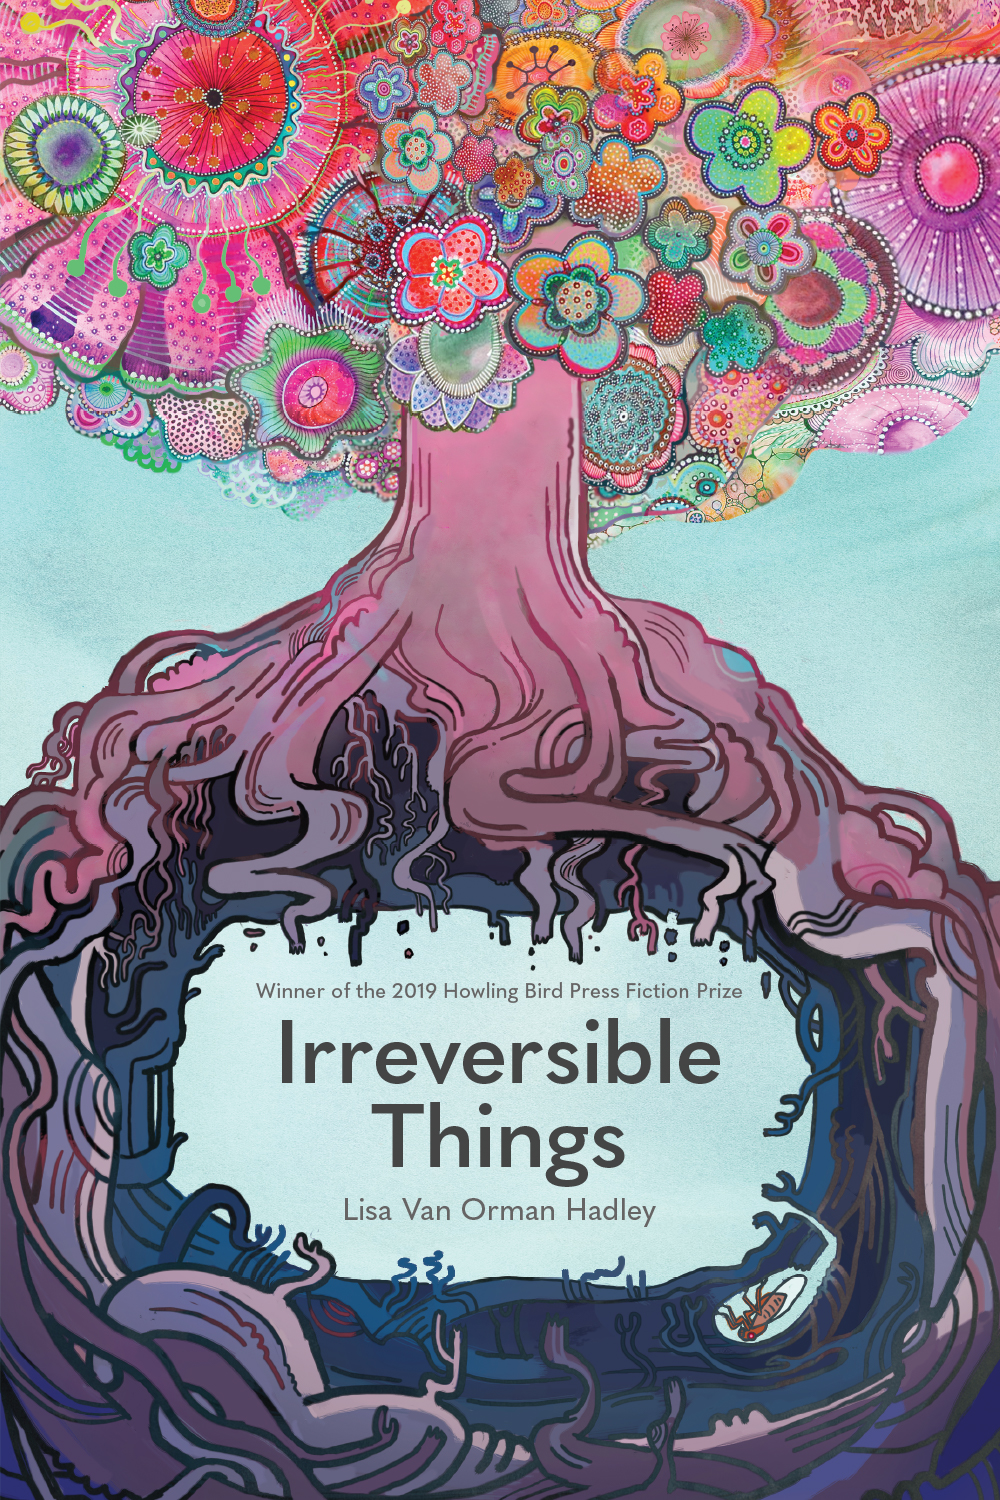 Irreversible Things